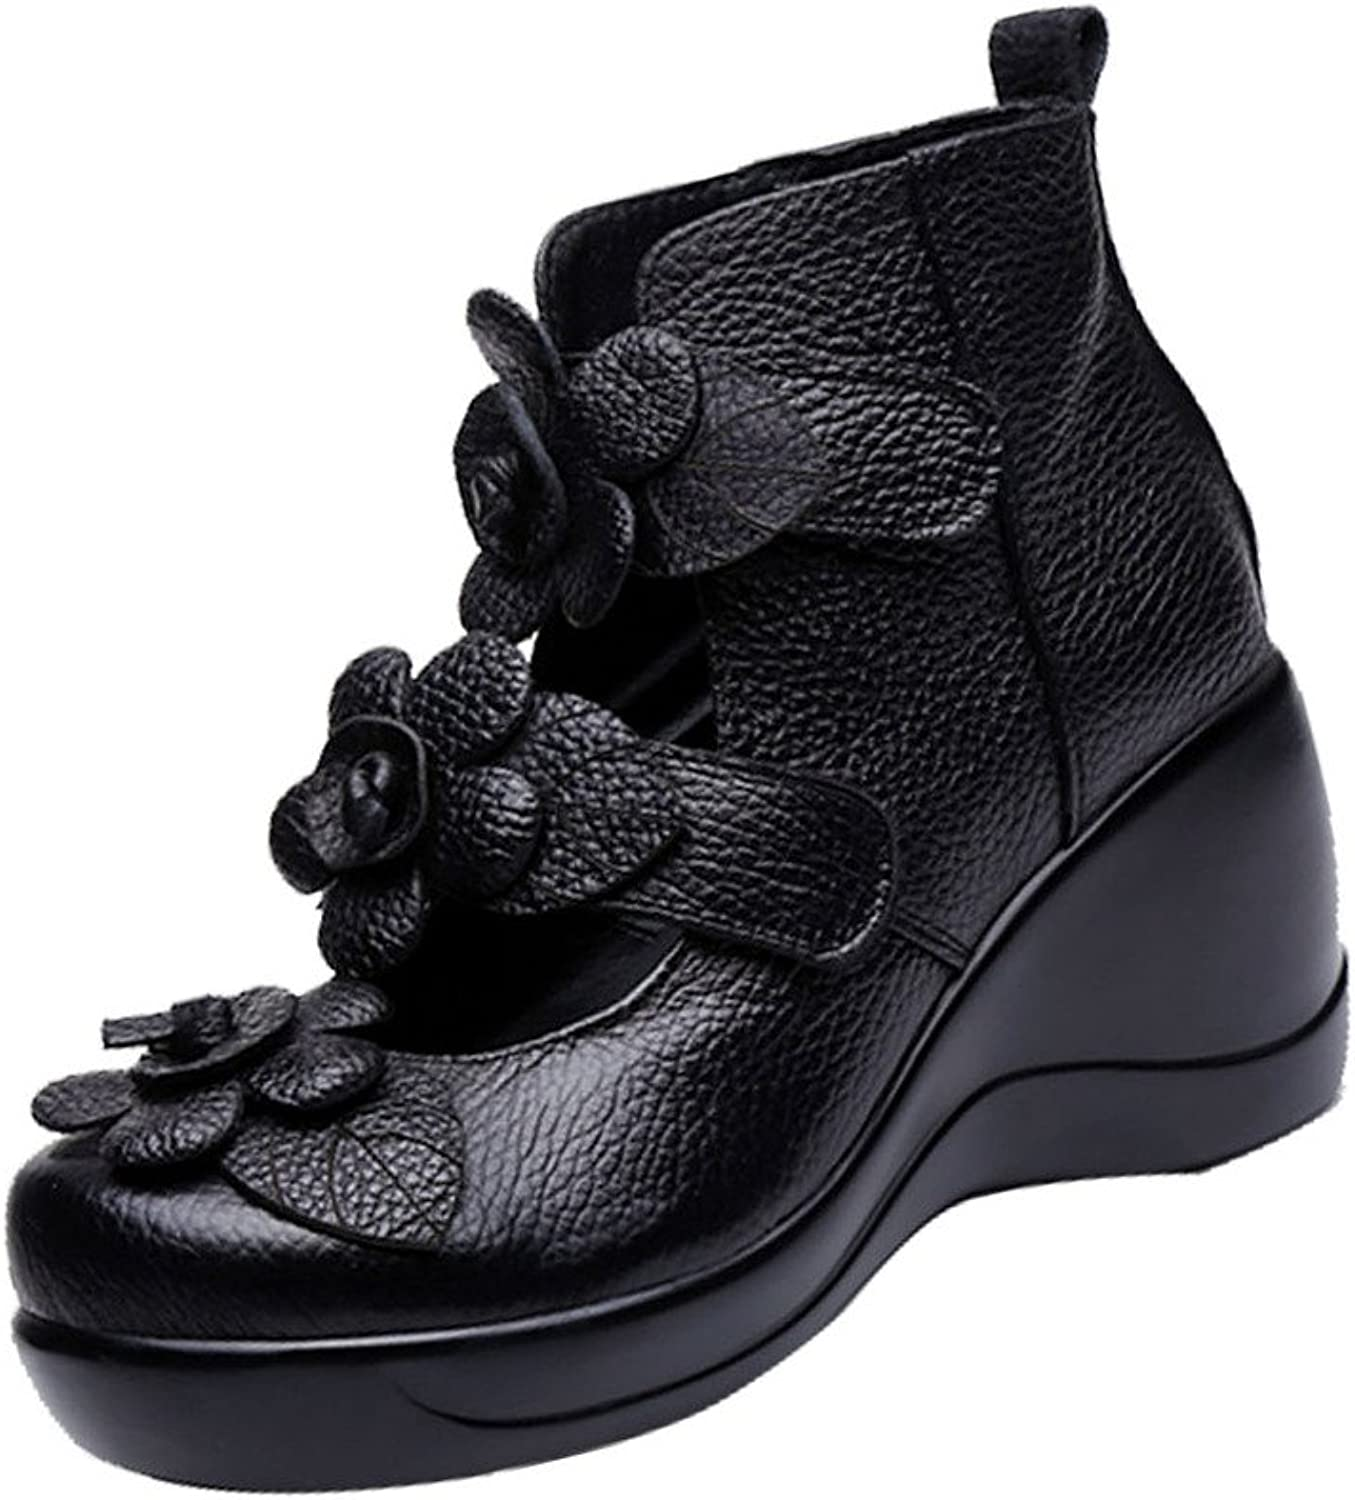 Yolee Women's Leather Flowers Wedges Platform shoes